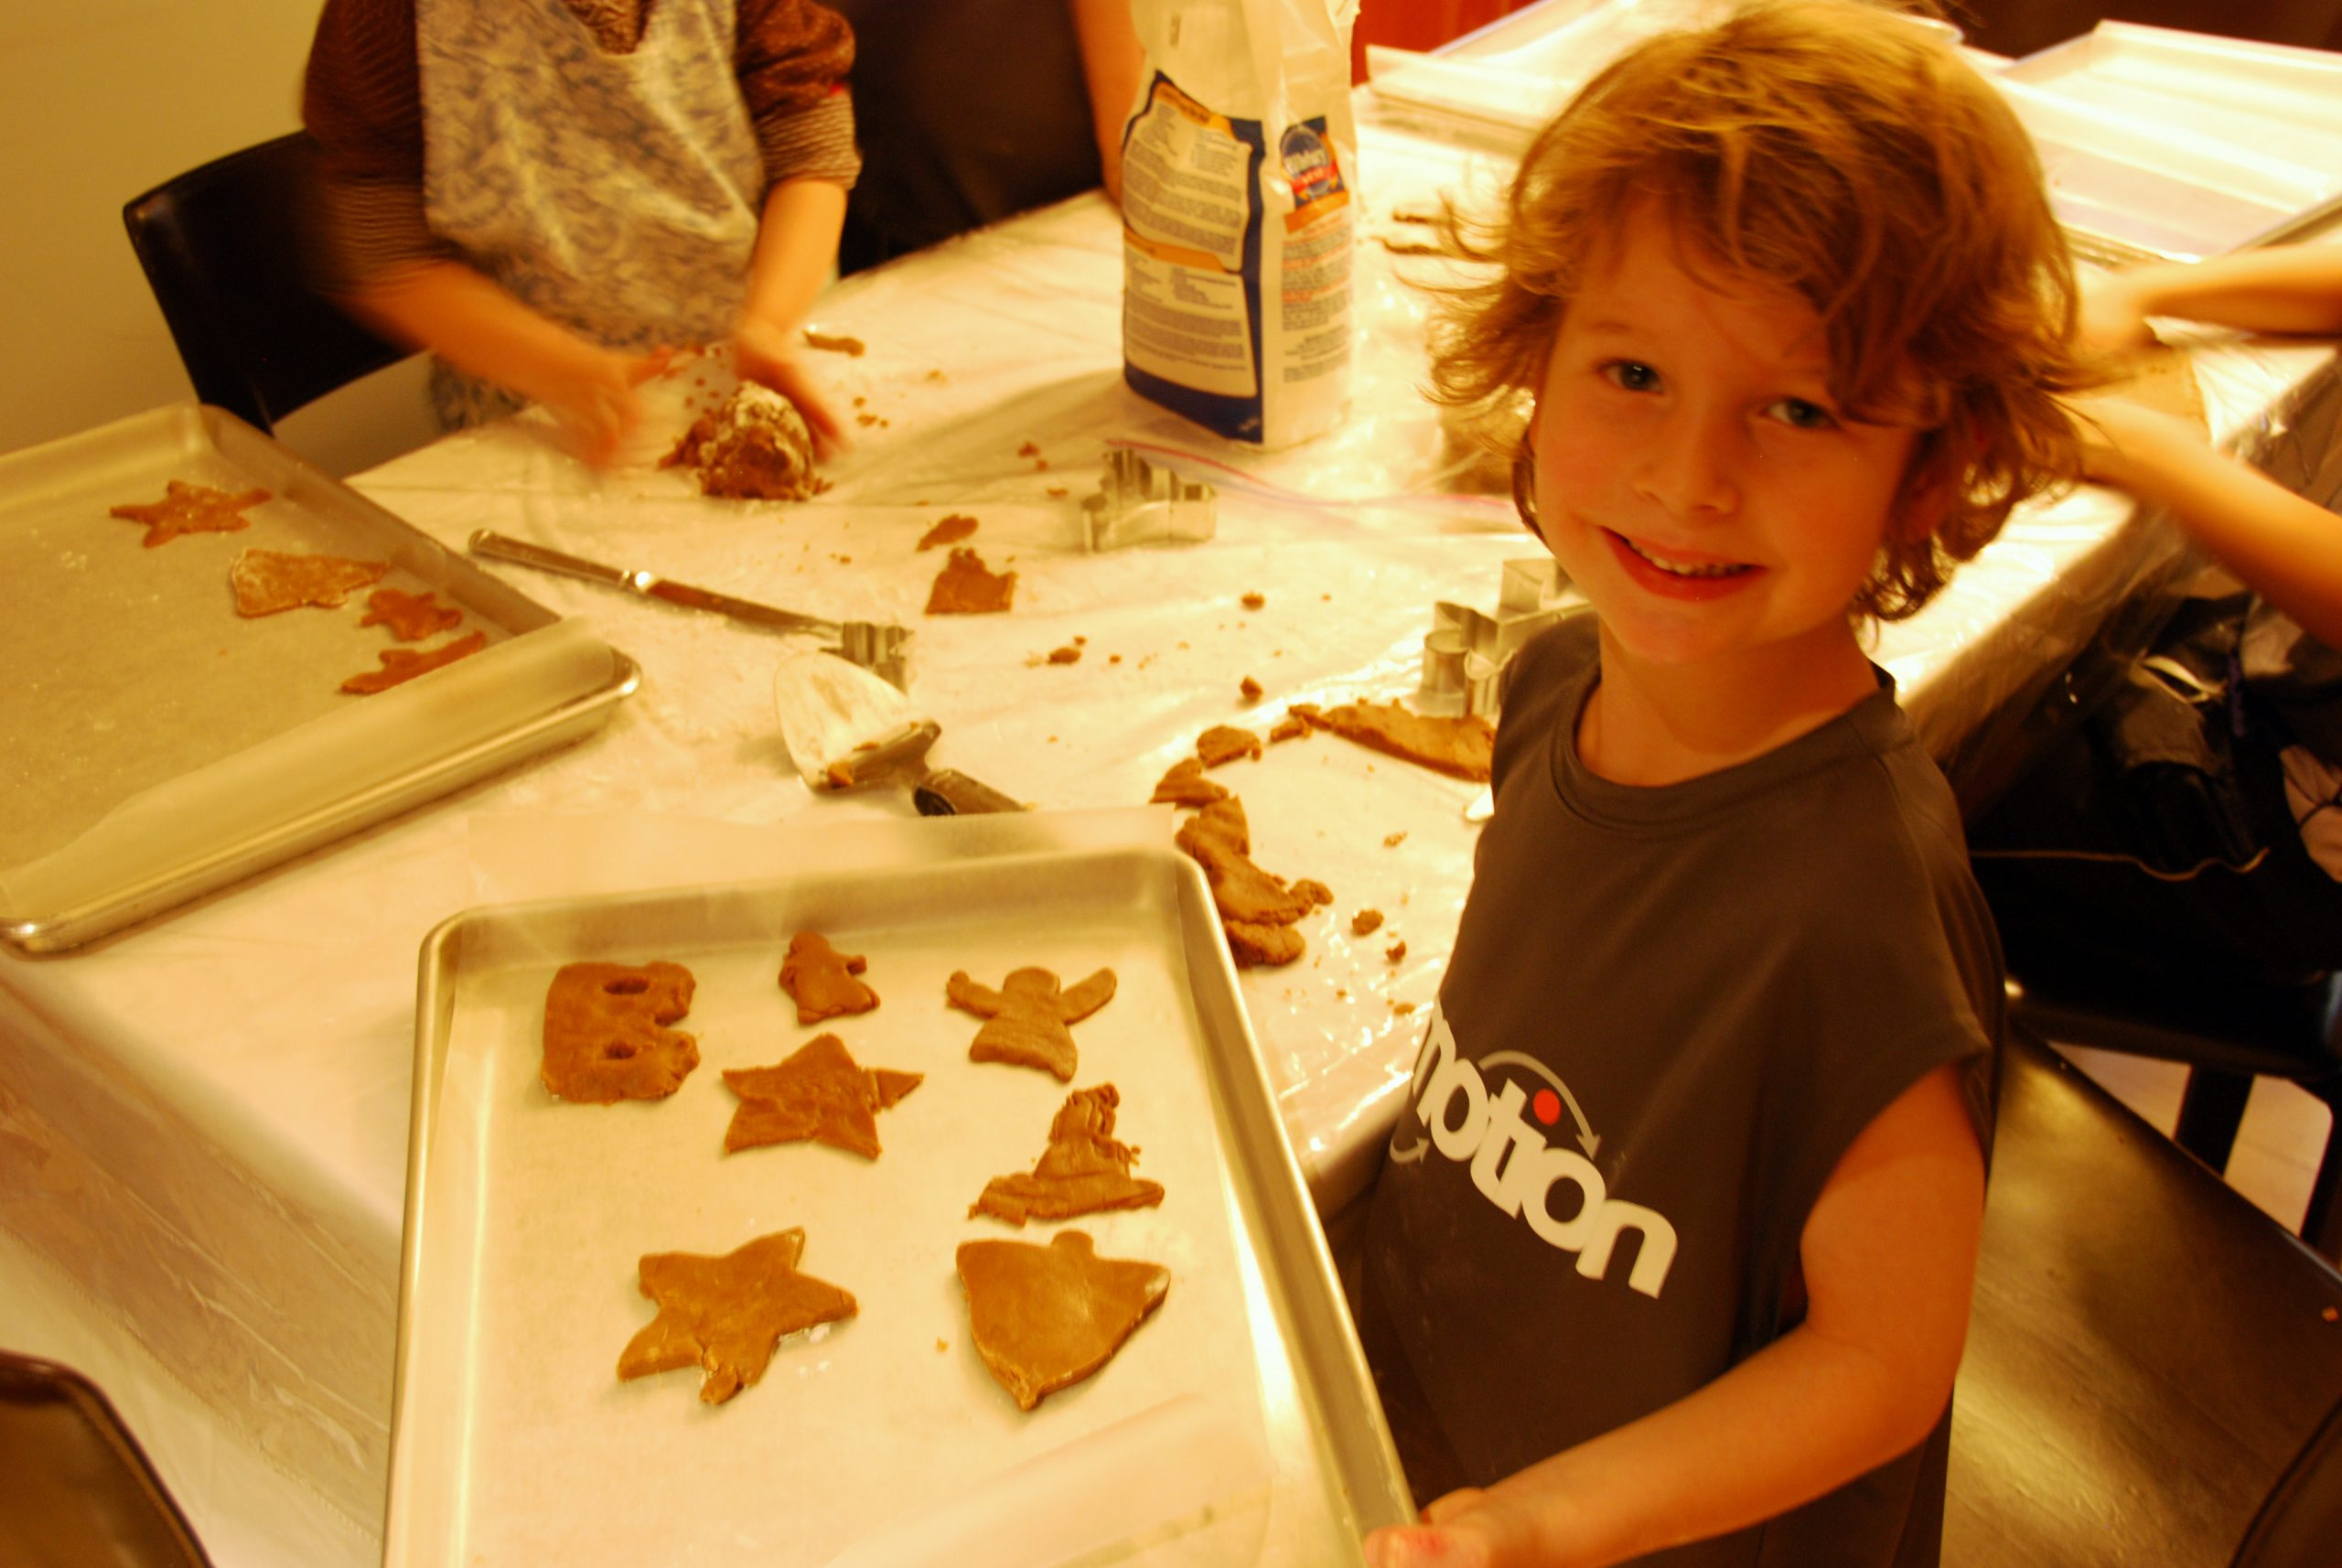 Recipe: Gingerbread Cookies With the Kids